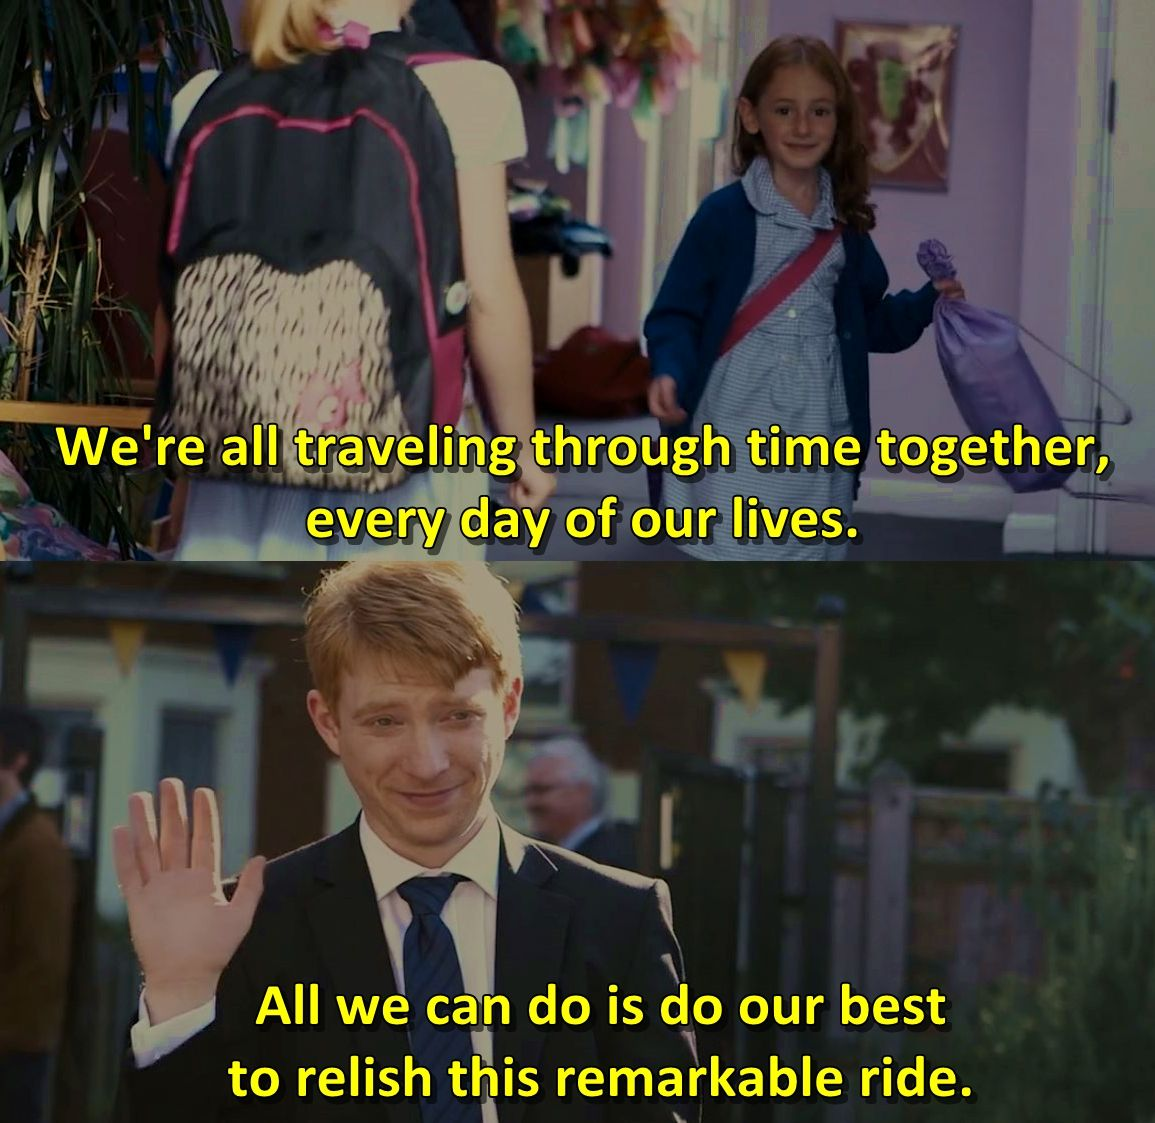 About time's travel inspirational movie quotes